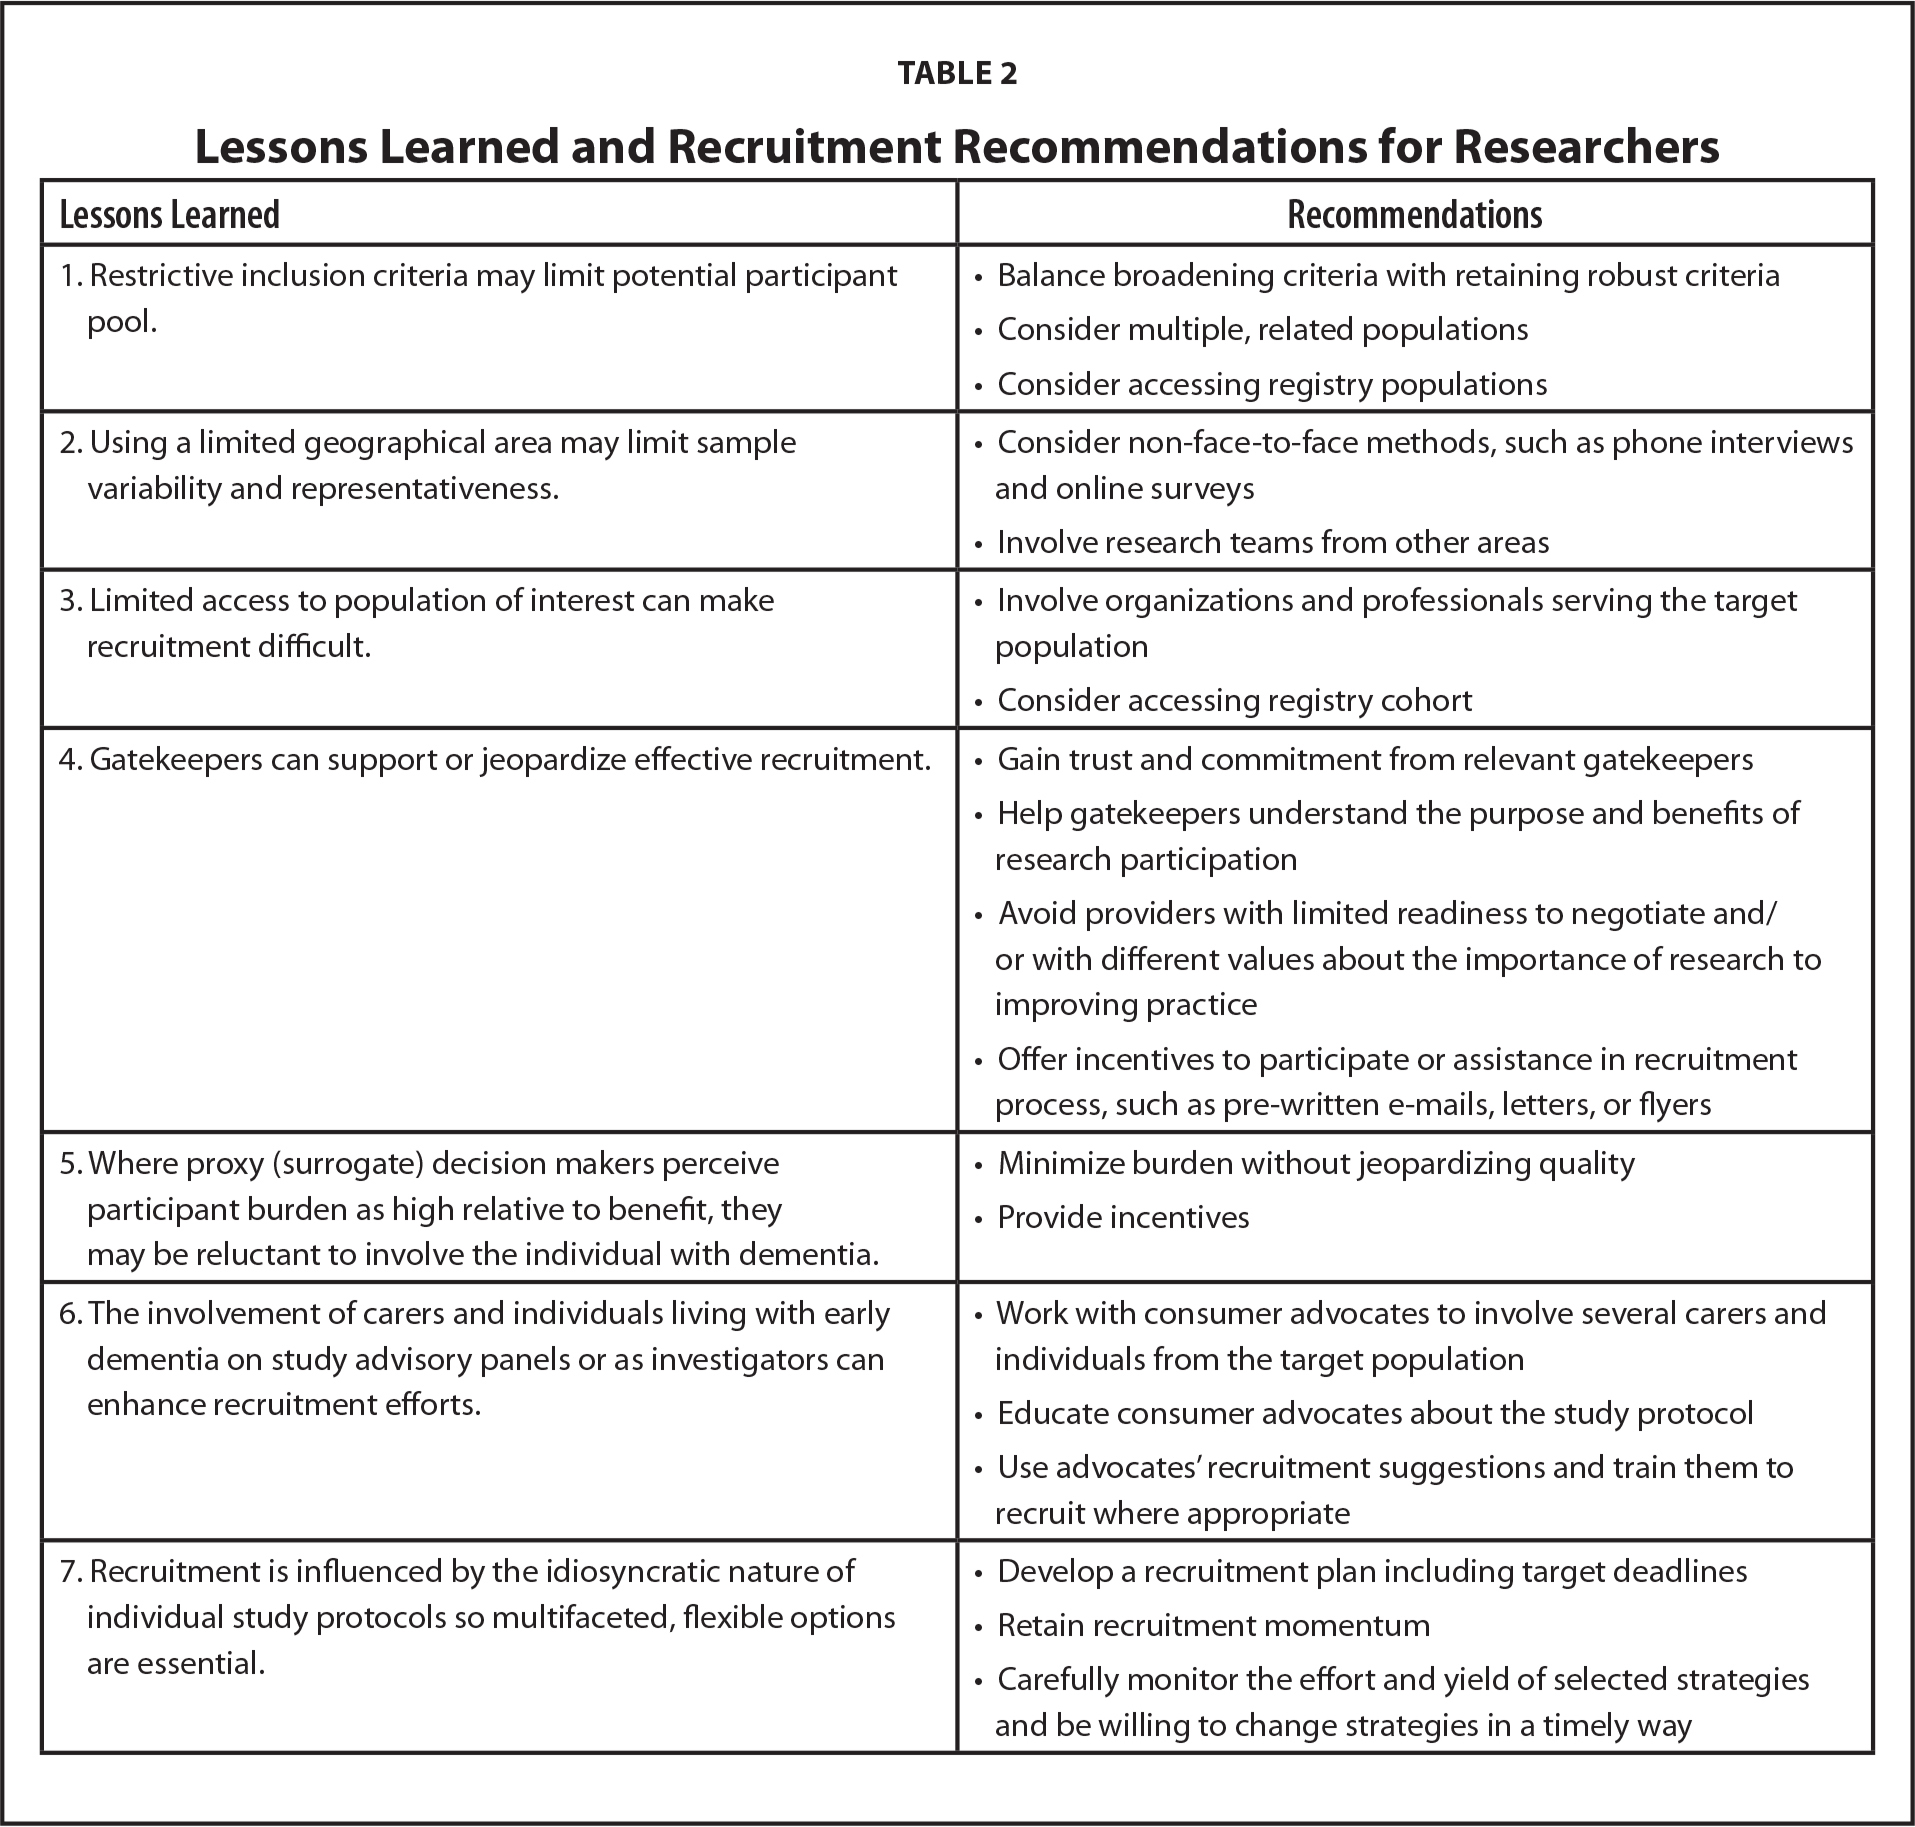 Lessons Learned and Recruitment Recommendations for Researchers